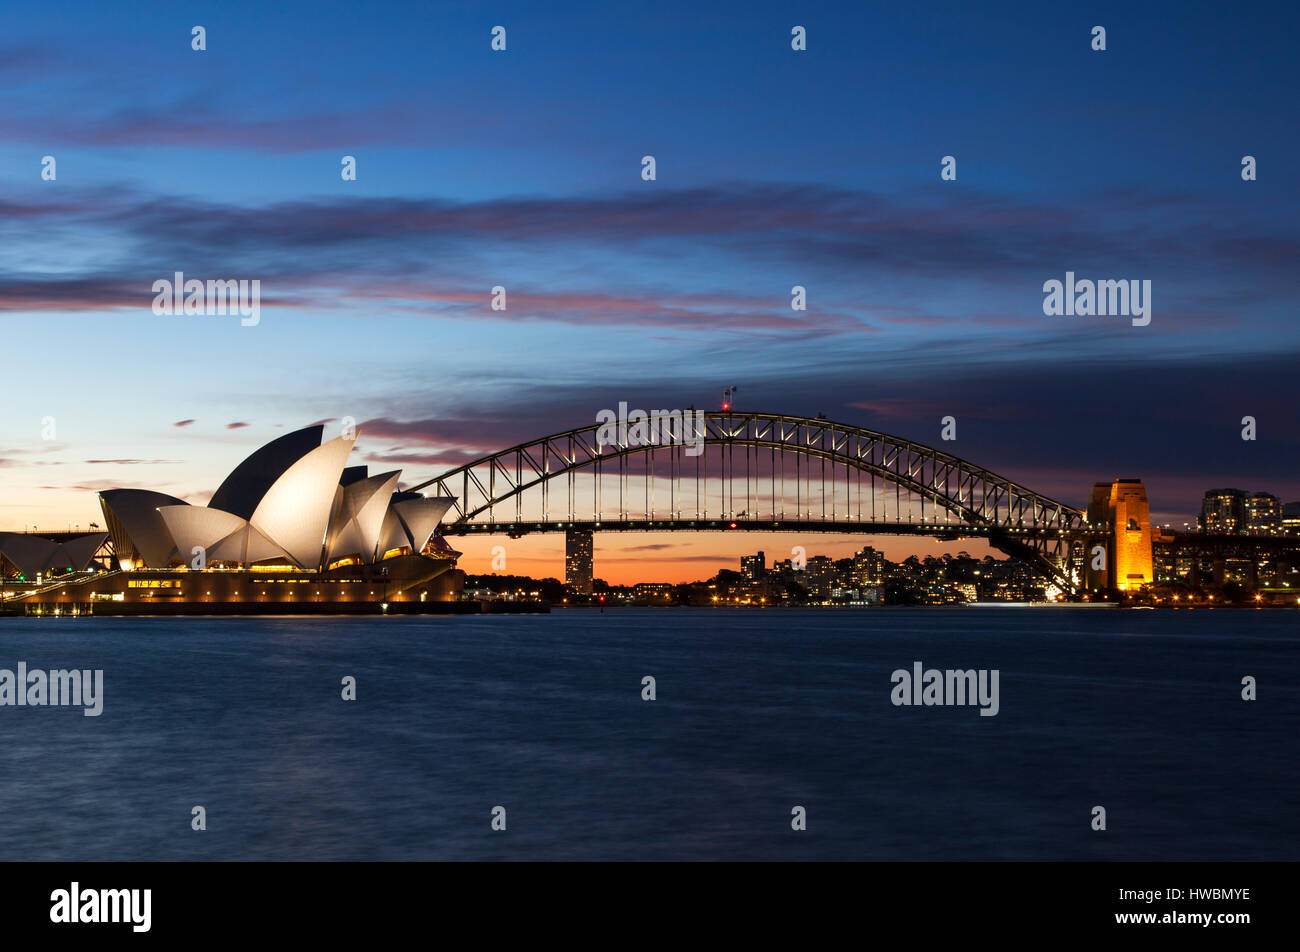 Sydney Opera House and Harbour Bridge at Dusk, Sydney, Australia - Stock Image